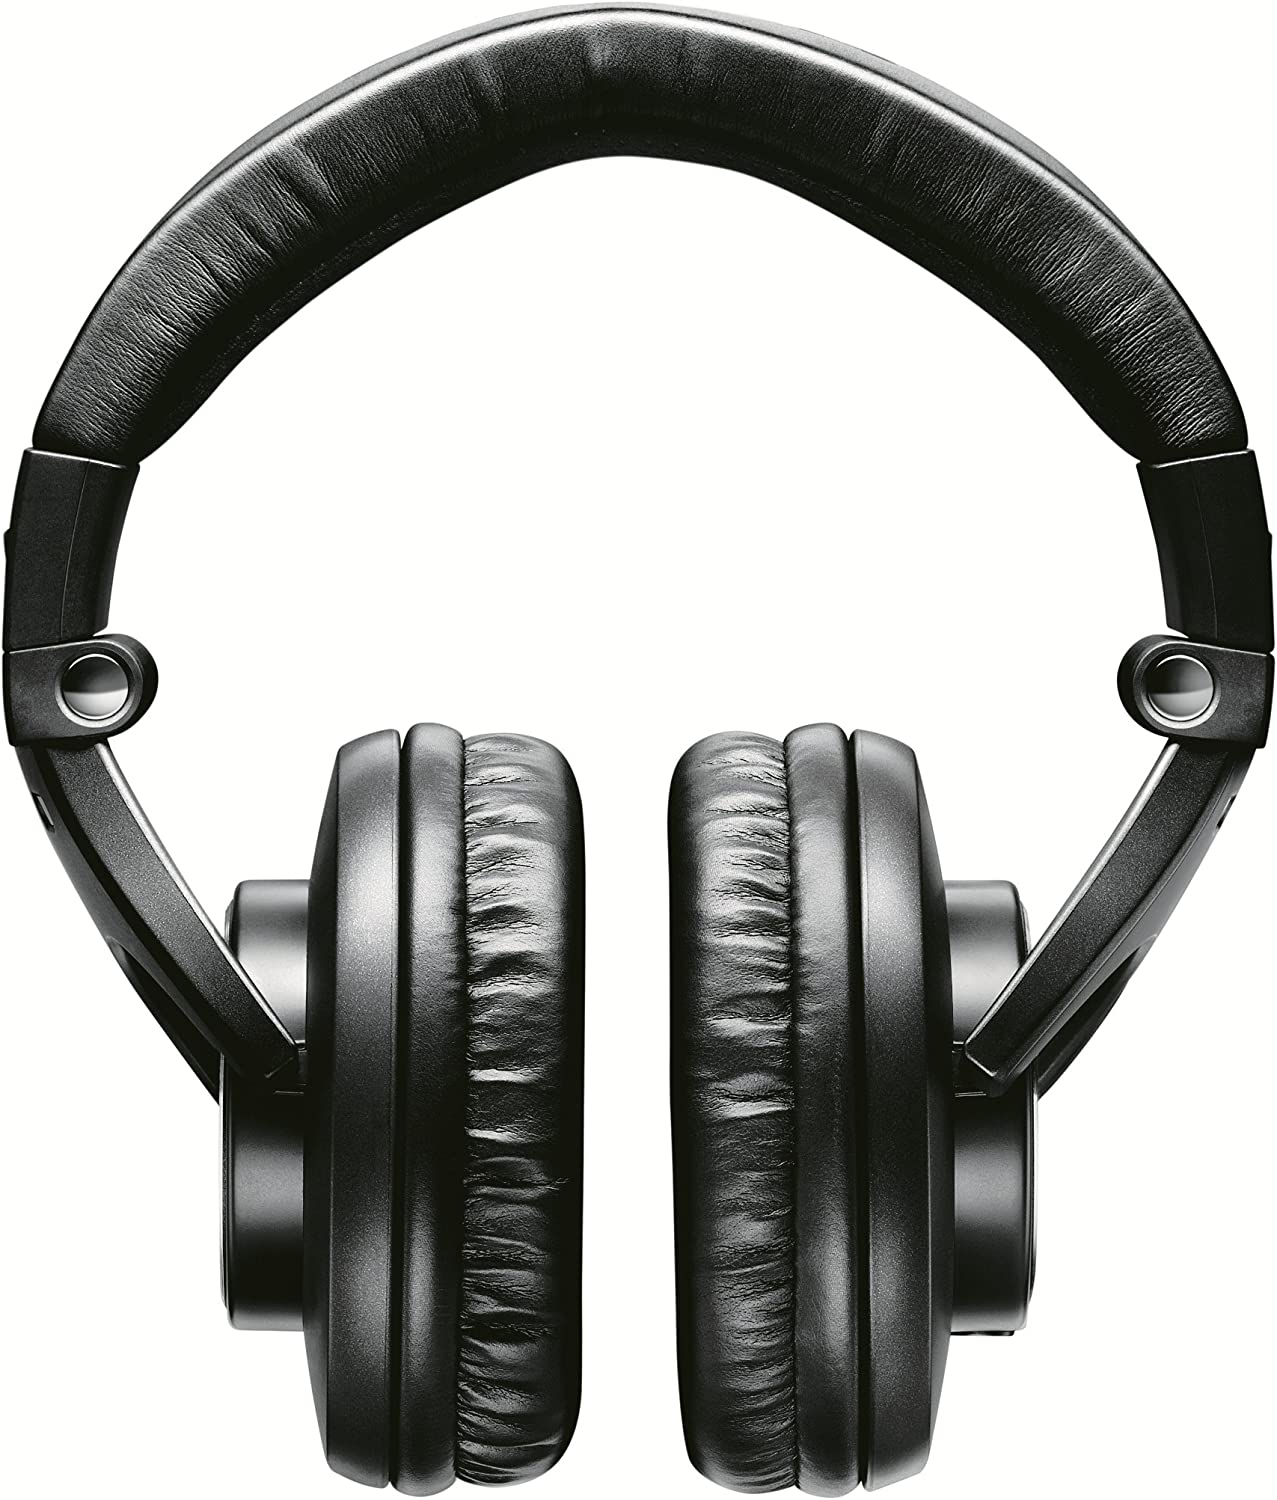 Best Studio Headphones For Mixing And Mastering Music